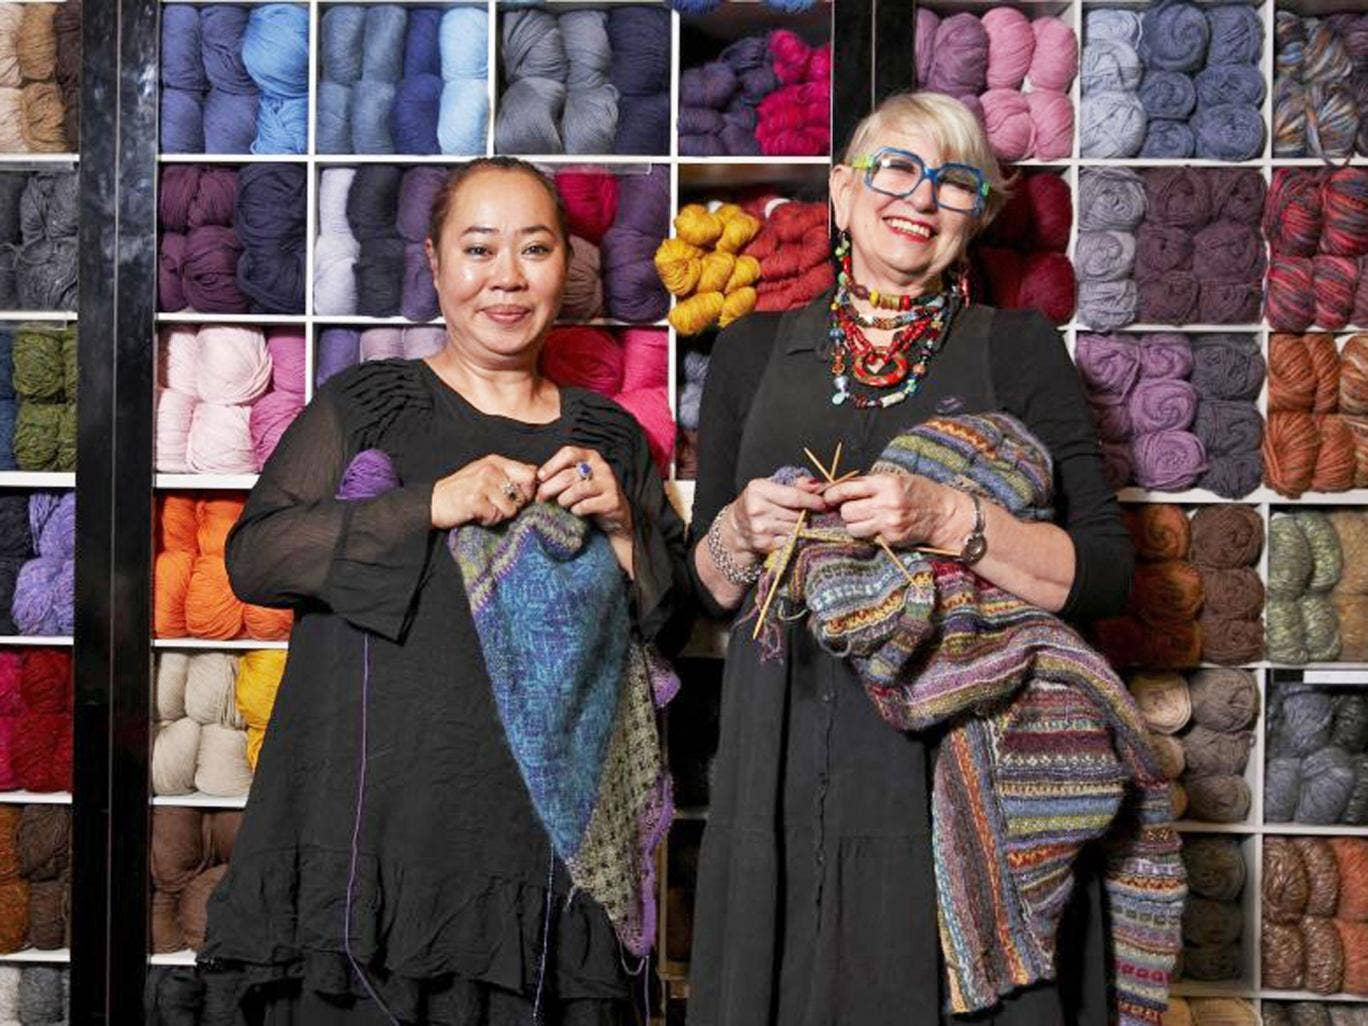 Material world: sales staff Jools and Trudy featured in 'Liberty of London'